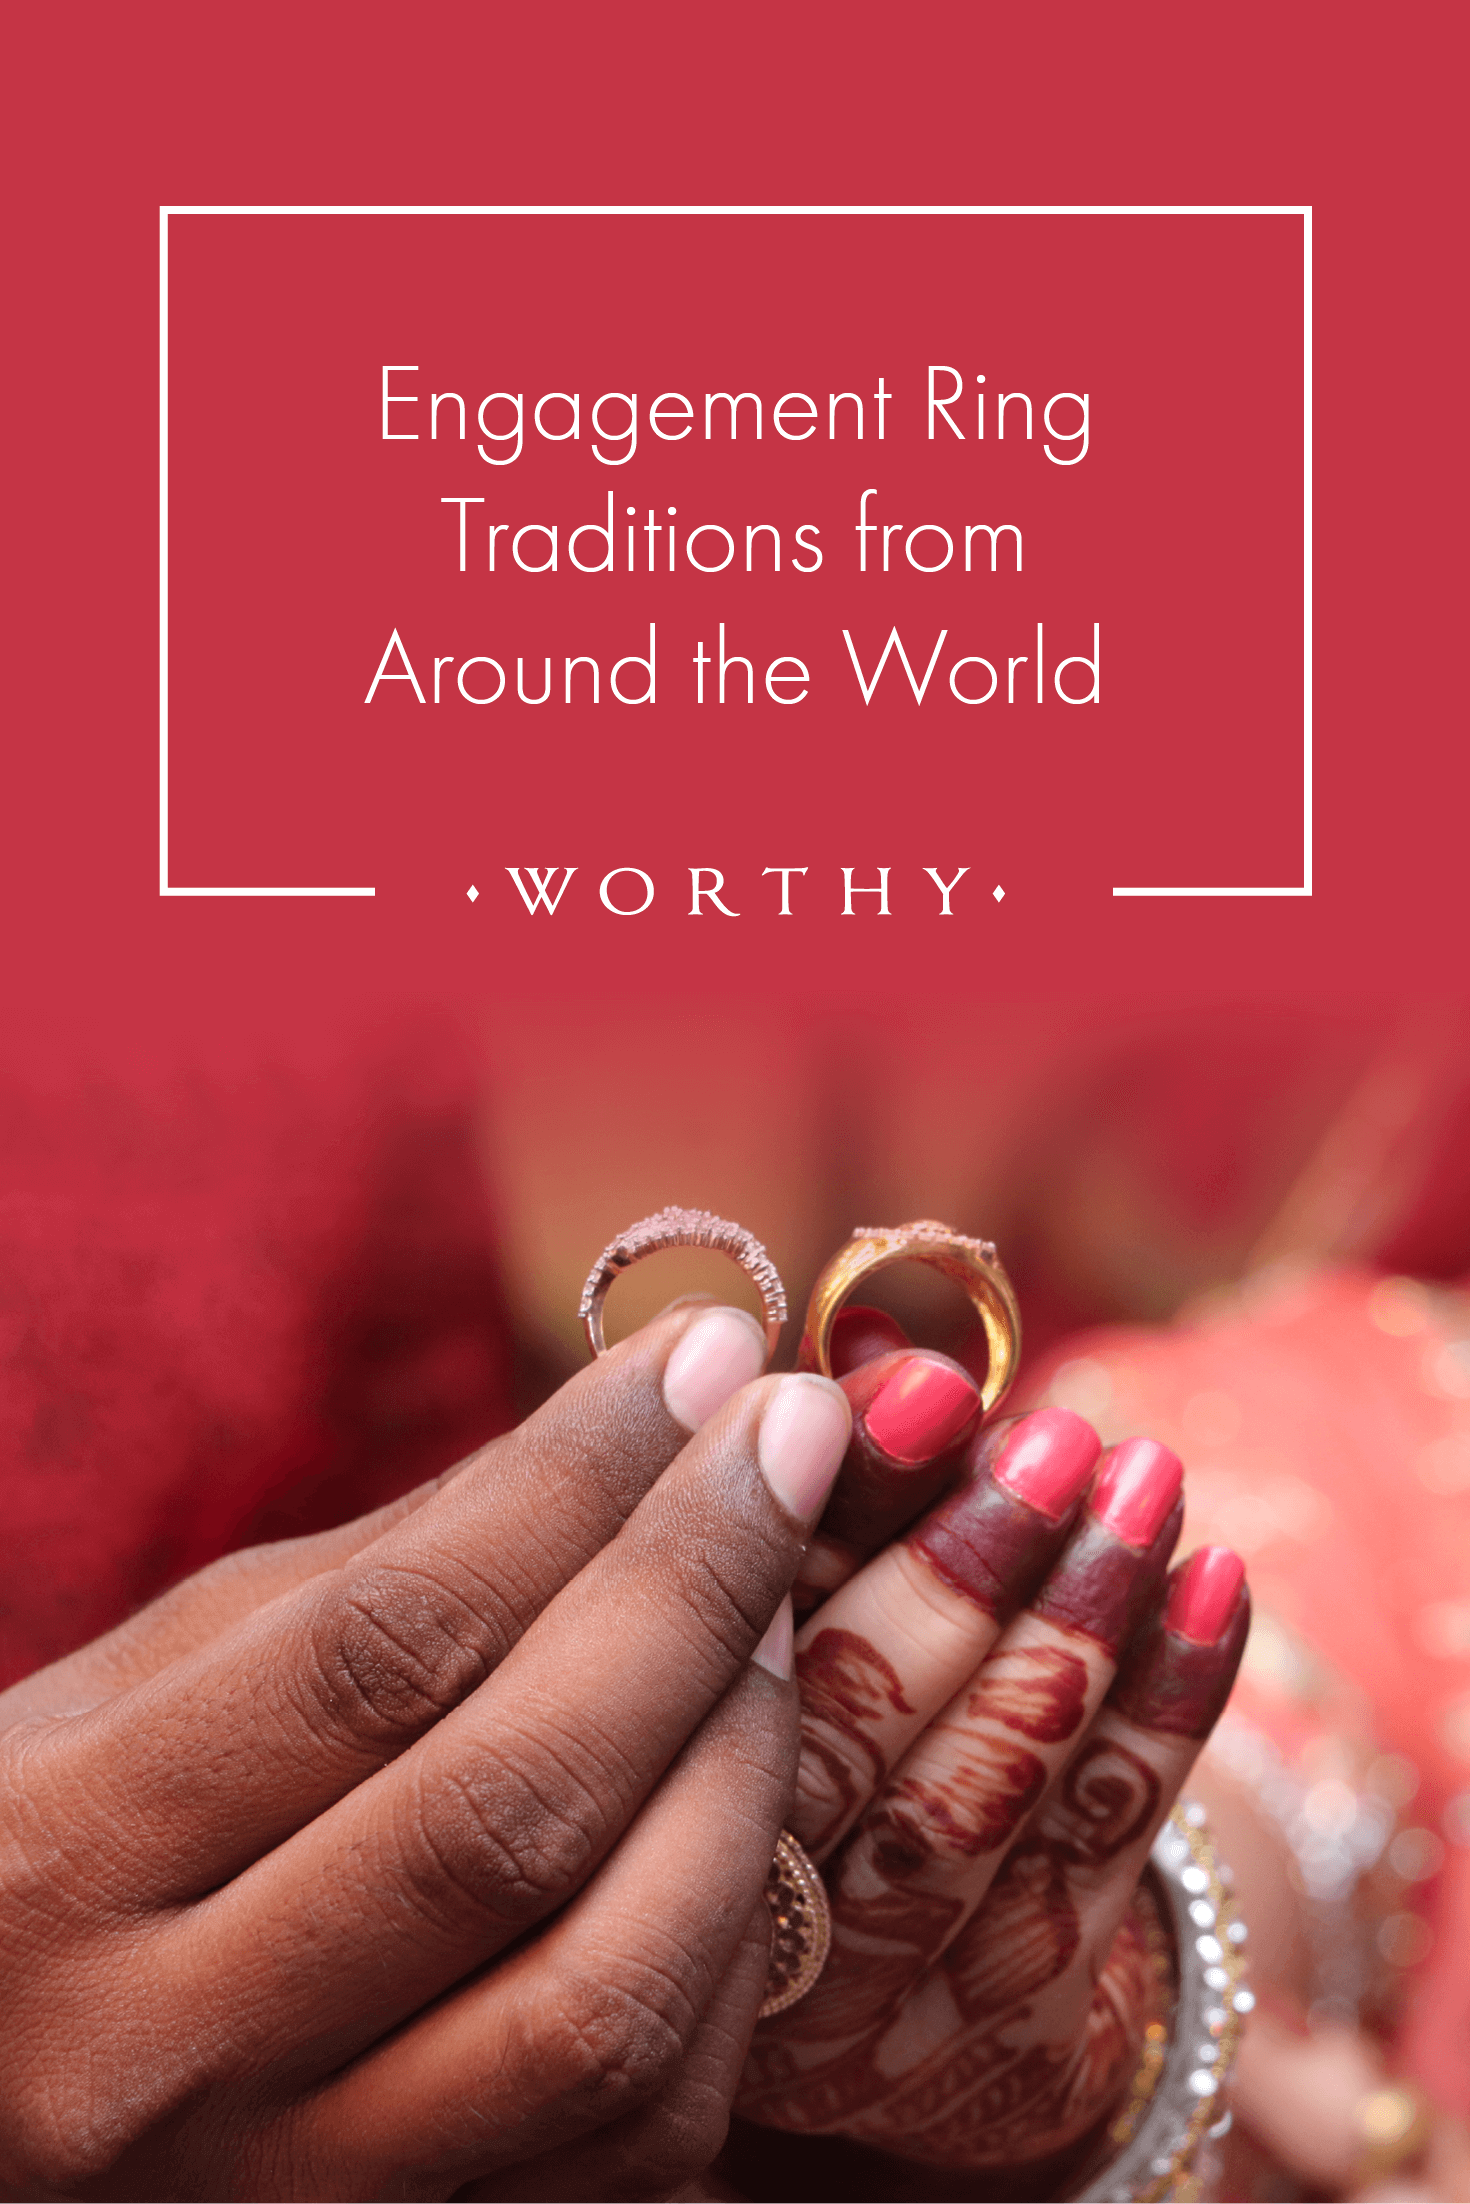 Ever wonder about engagement rings in Sweden, Mexico or India? Learn more about engagement ring traditions from around the world.